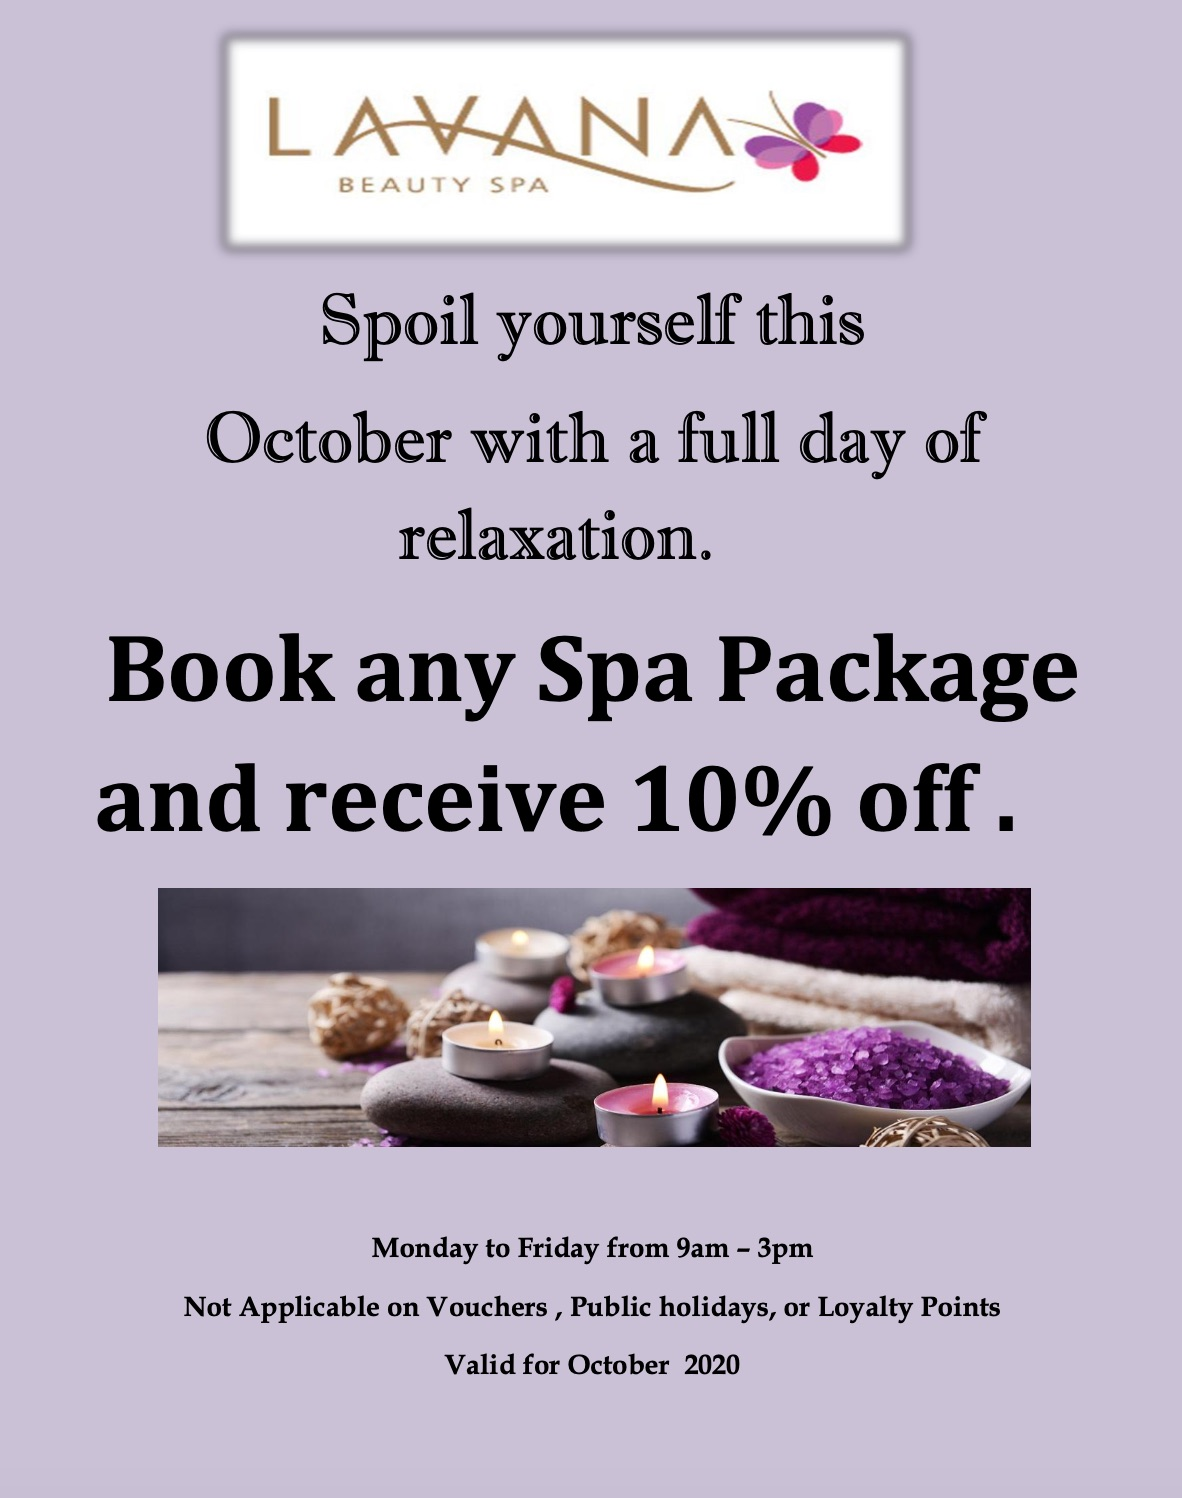 spa package special lavana beauty spa october 2020